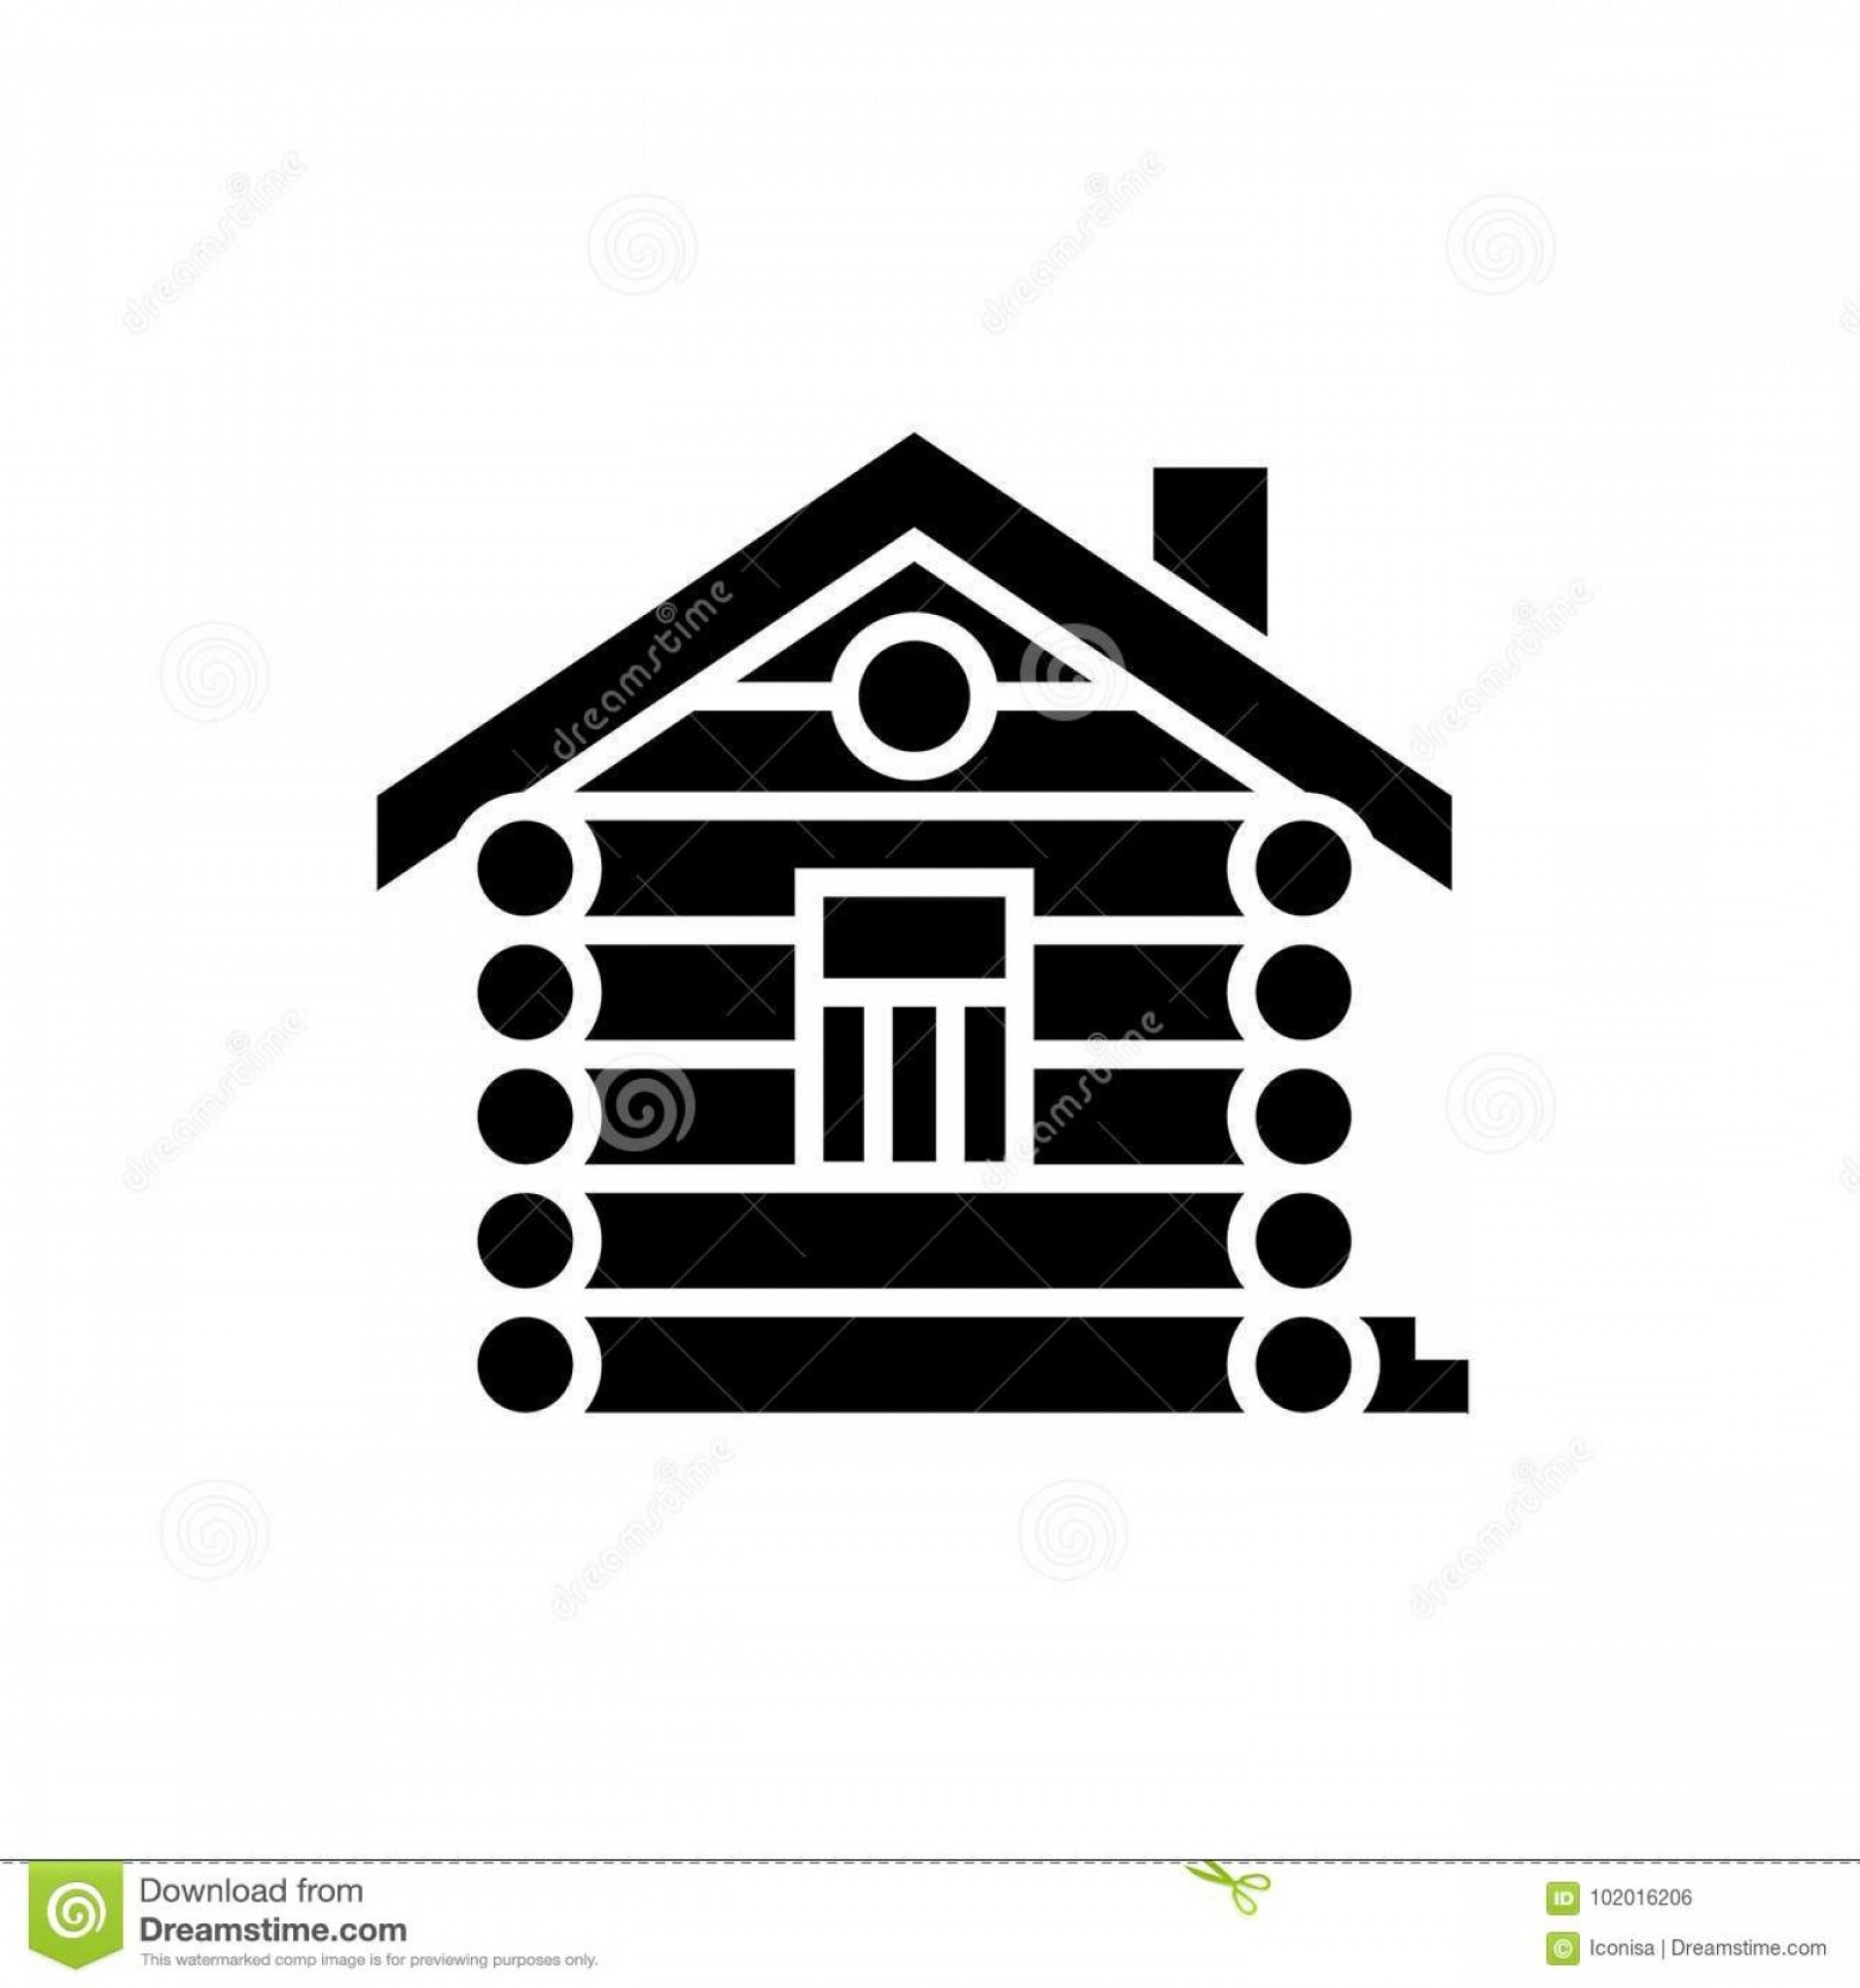 Vector House Sign: House Cabin Wood House Icon Illustration Vector Sign Isolated Background House Cabin Wood House Icon Vector Illustration Black Image